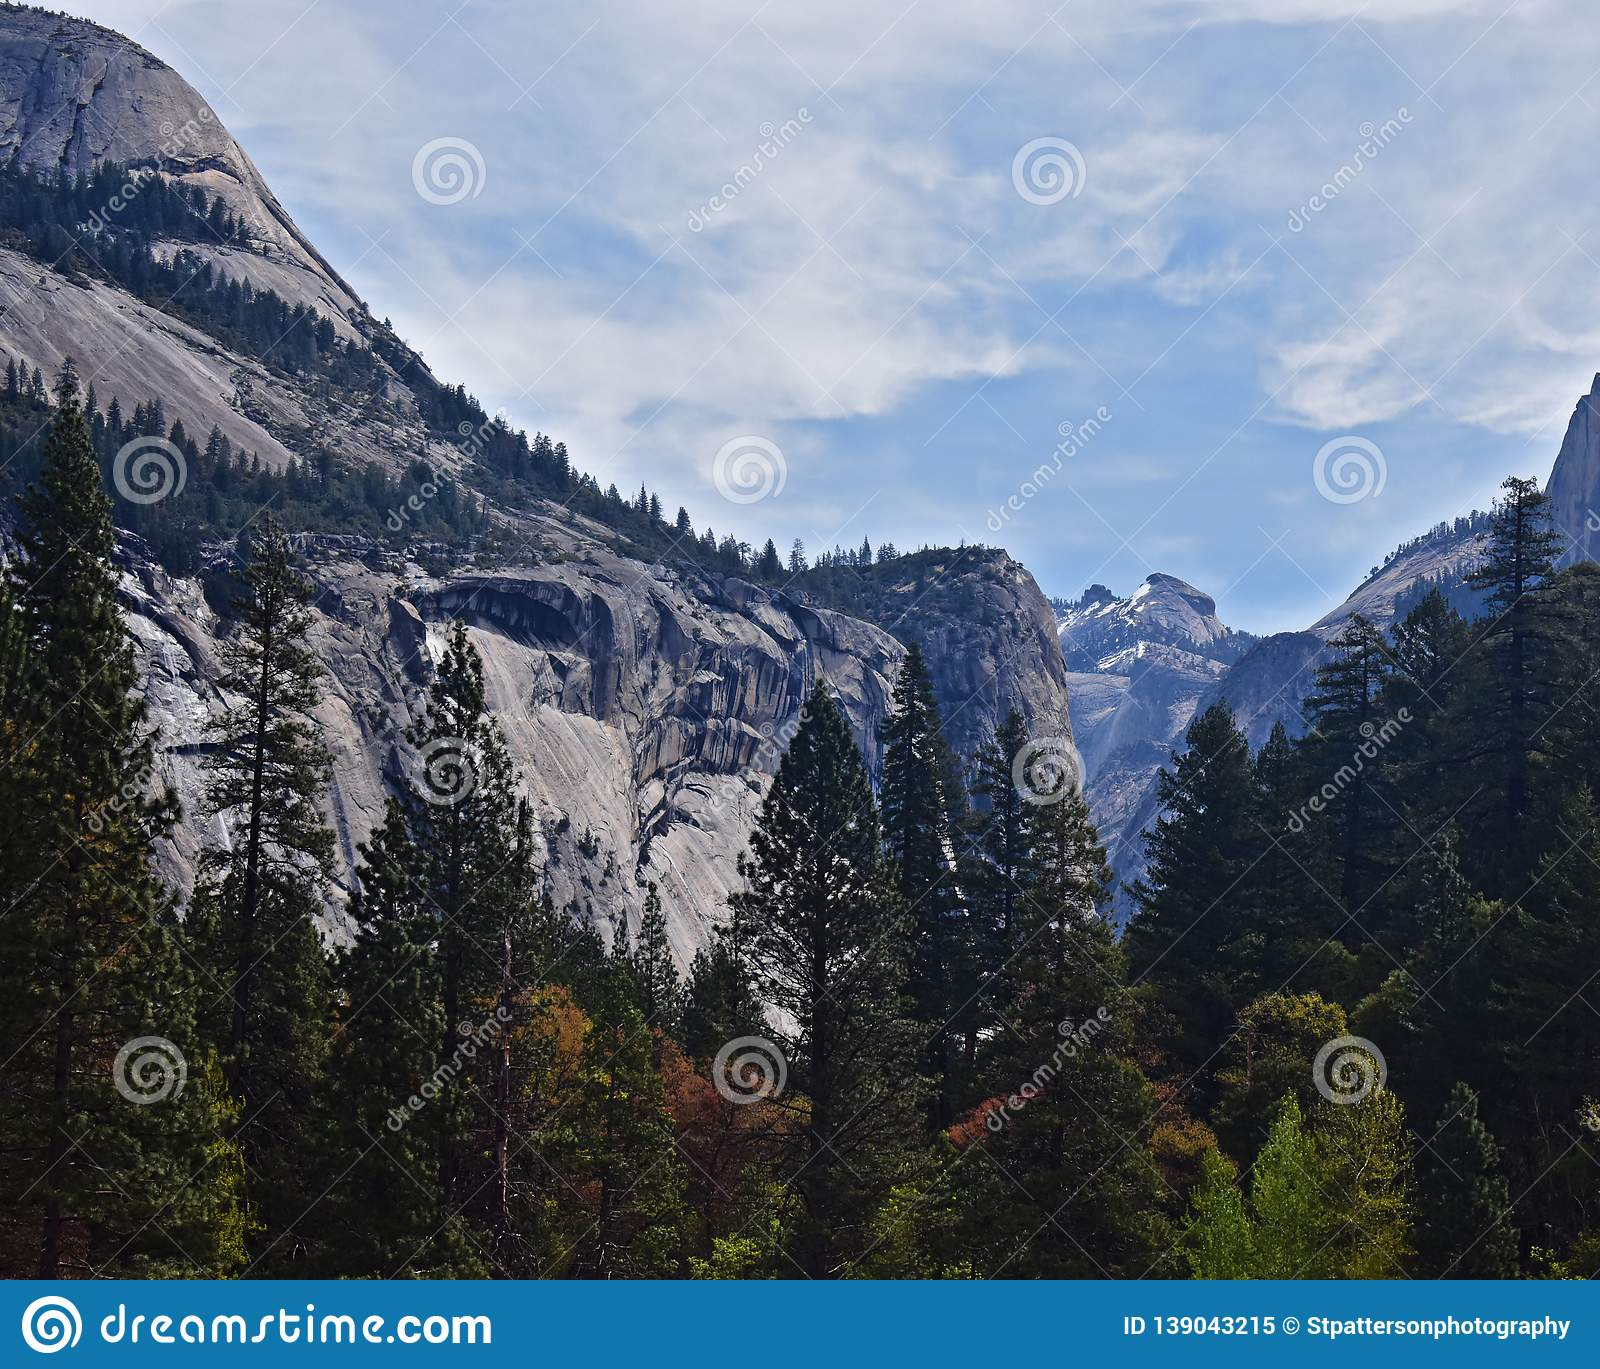 Scenic view of mountain and trees in Yosemite